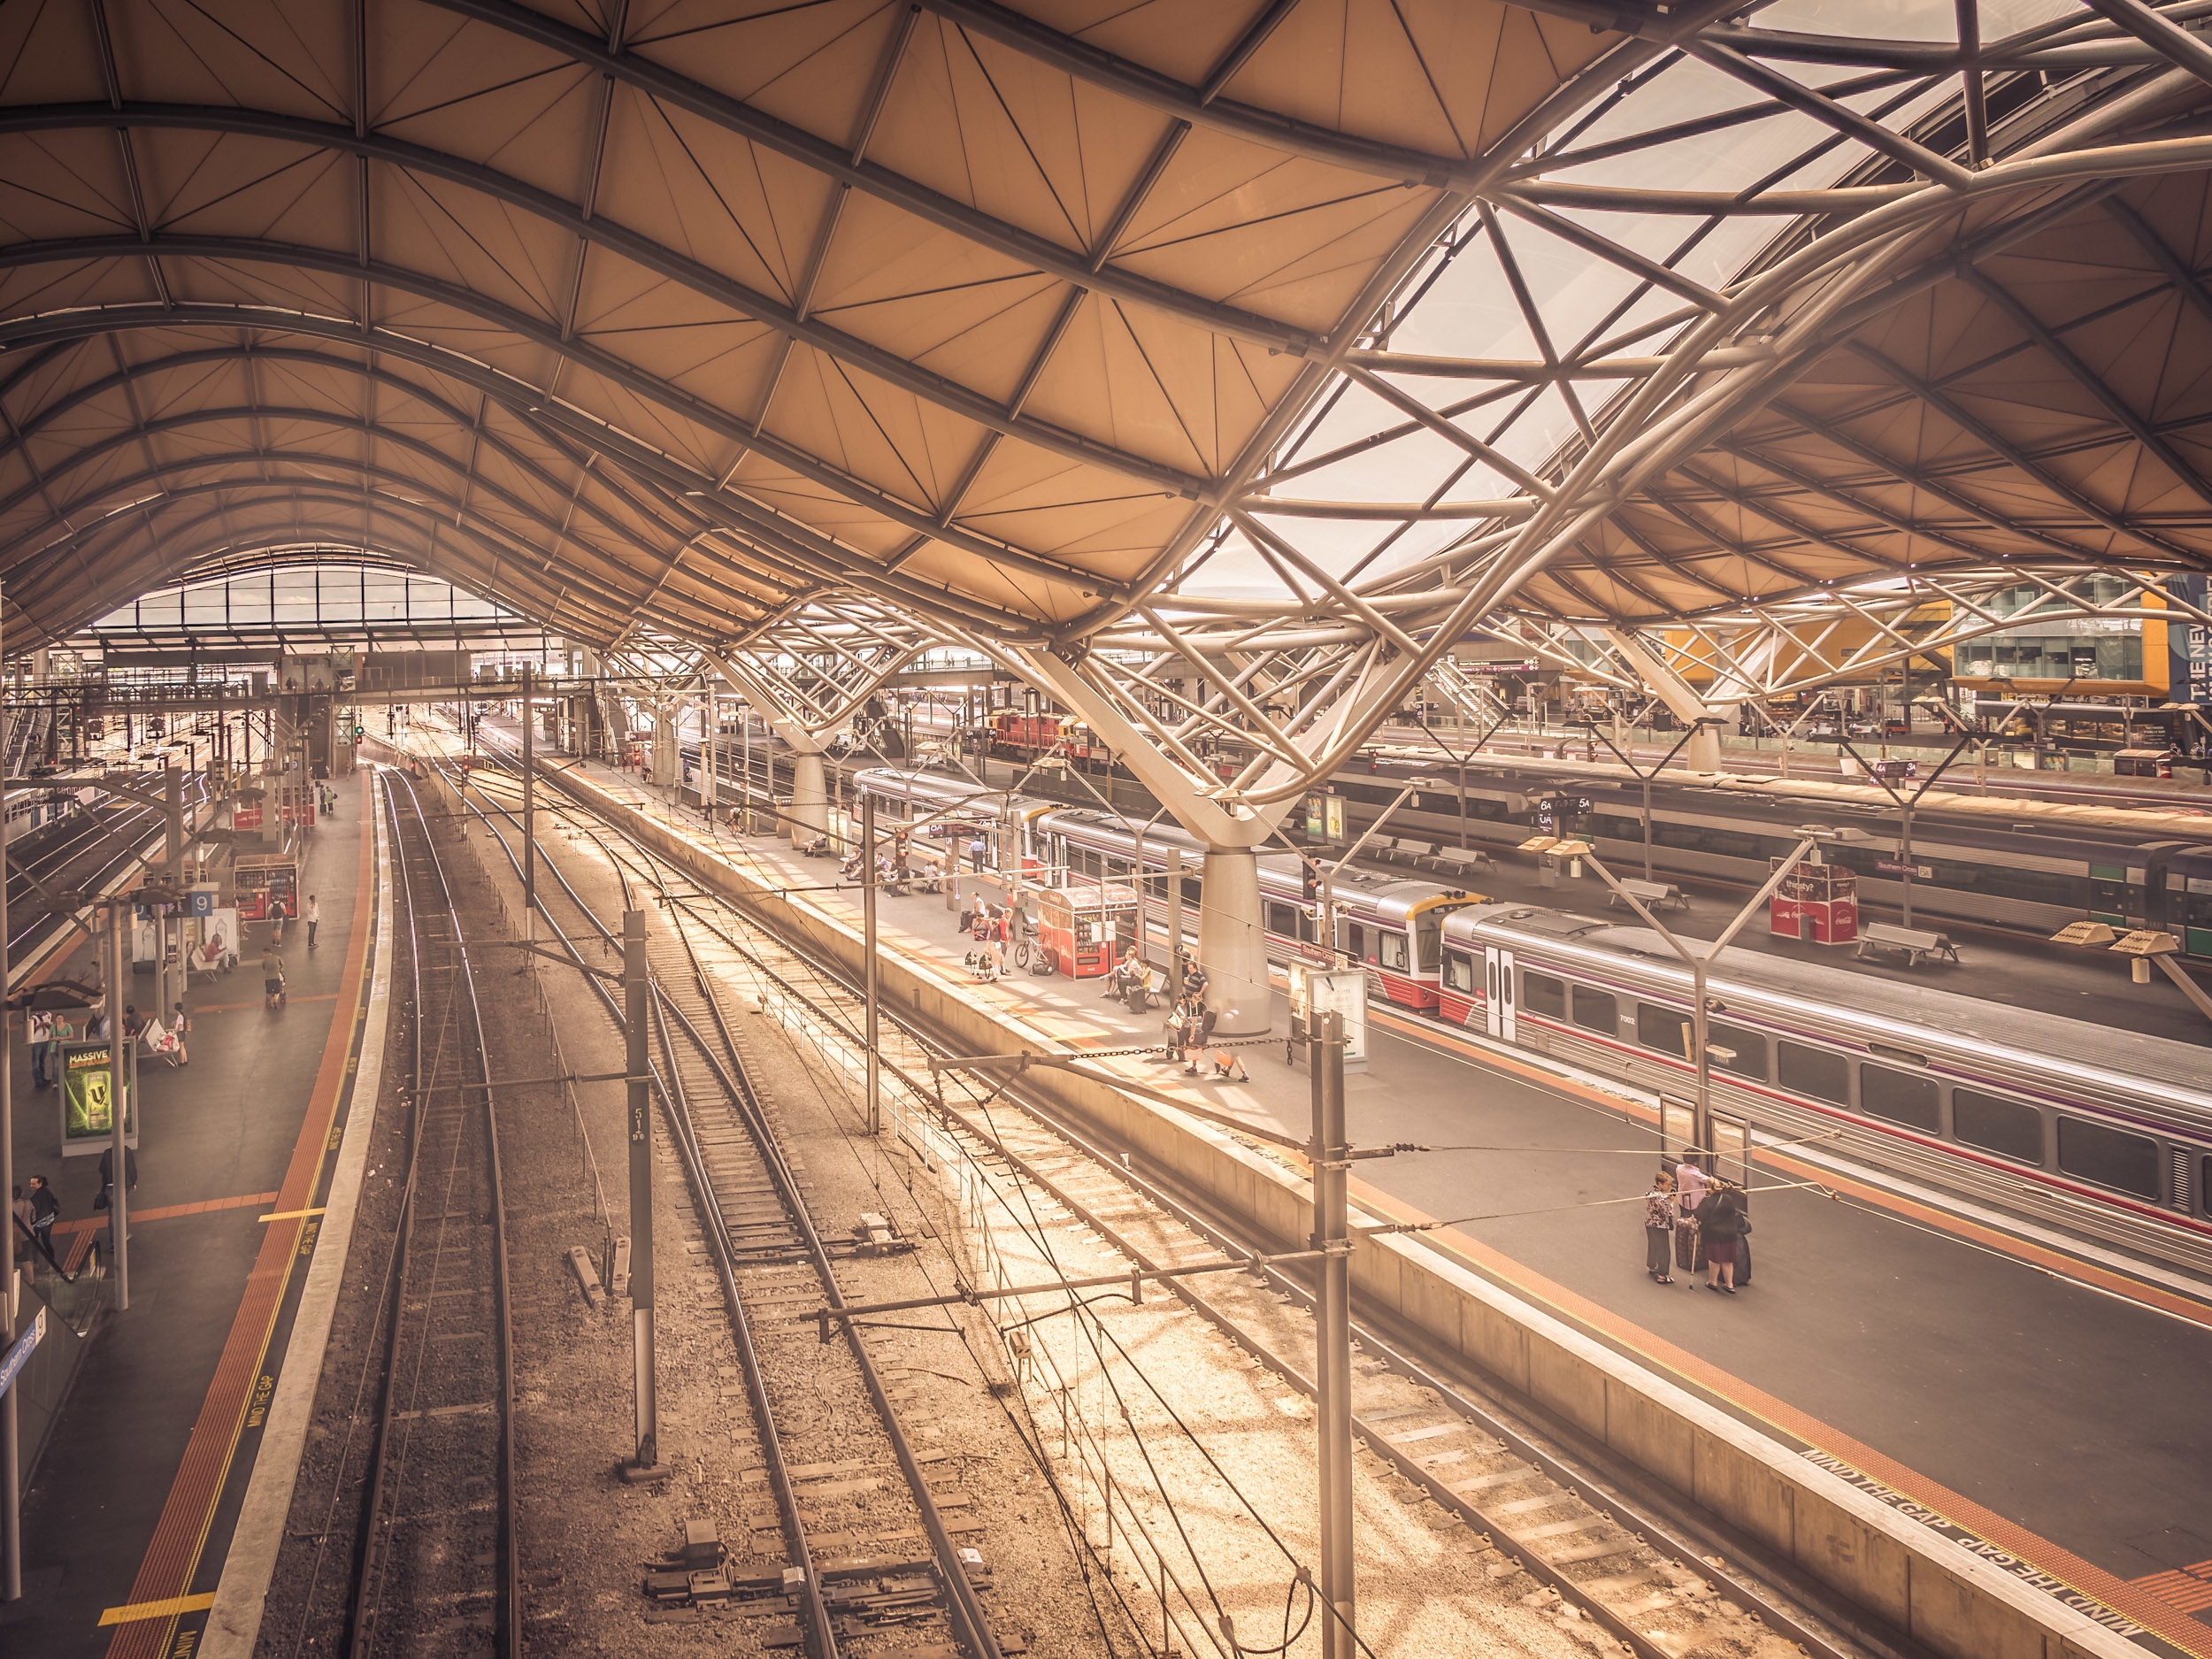 Southern Cross Train Station Melbourne Victoria Australia Google.jpg